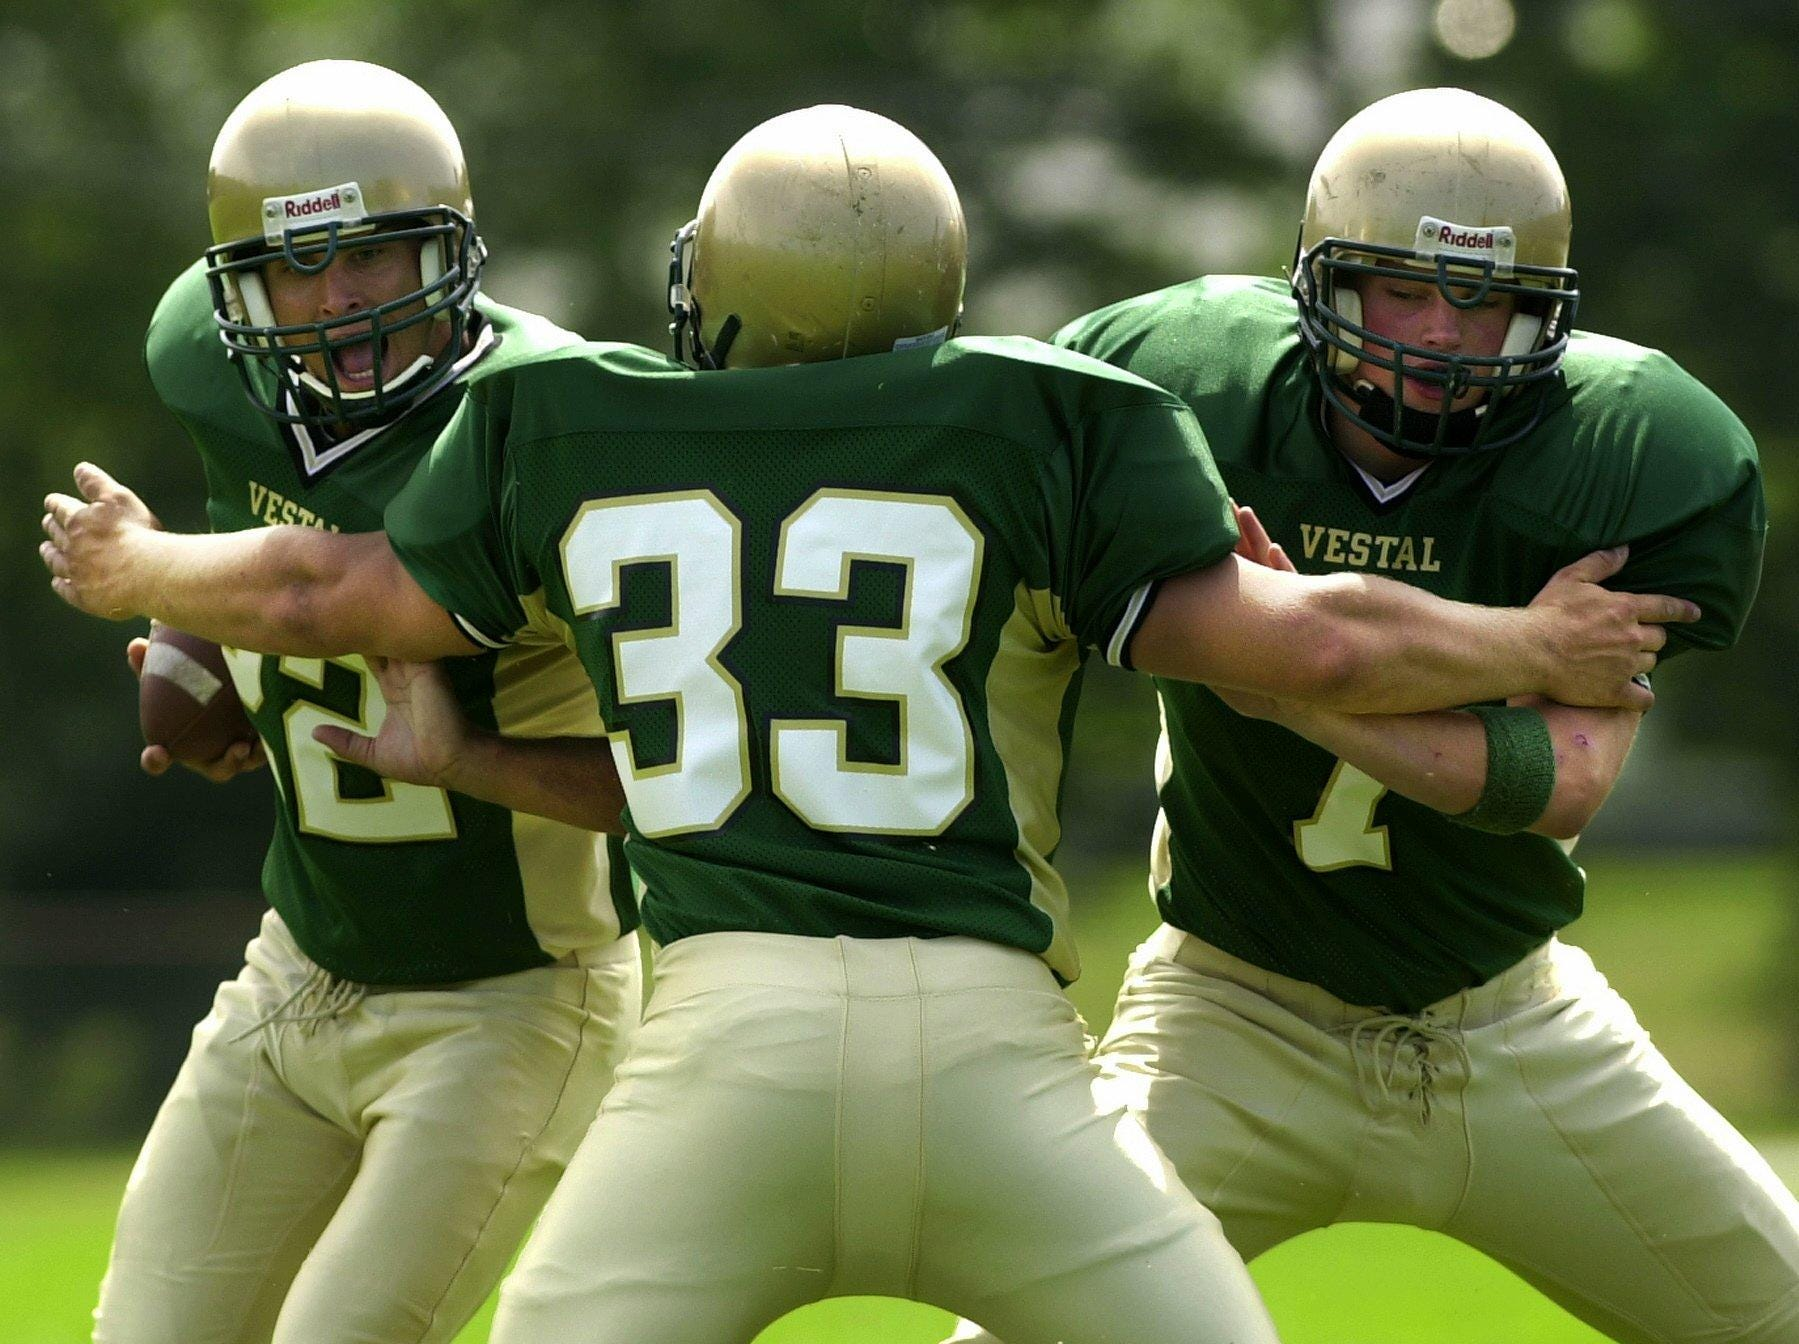 In 2005, Vestal High School's Mark Peretore, left, Mike Paolucci, center, and Steve Campbell.